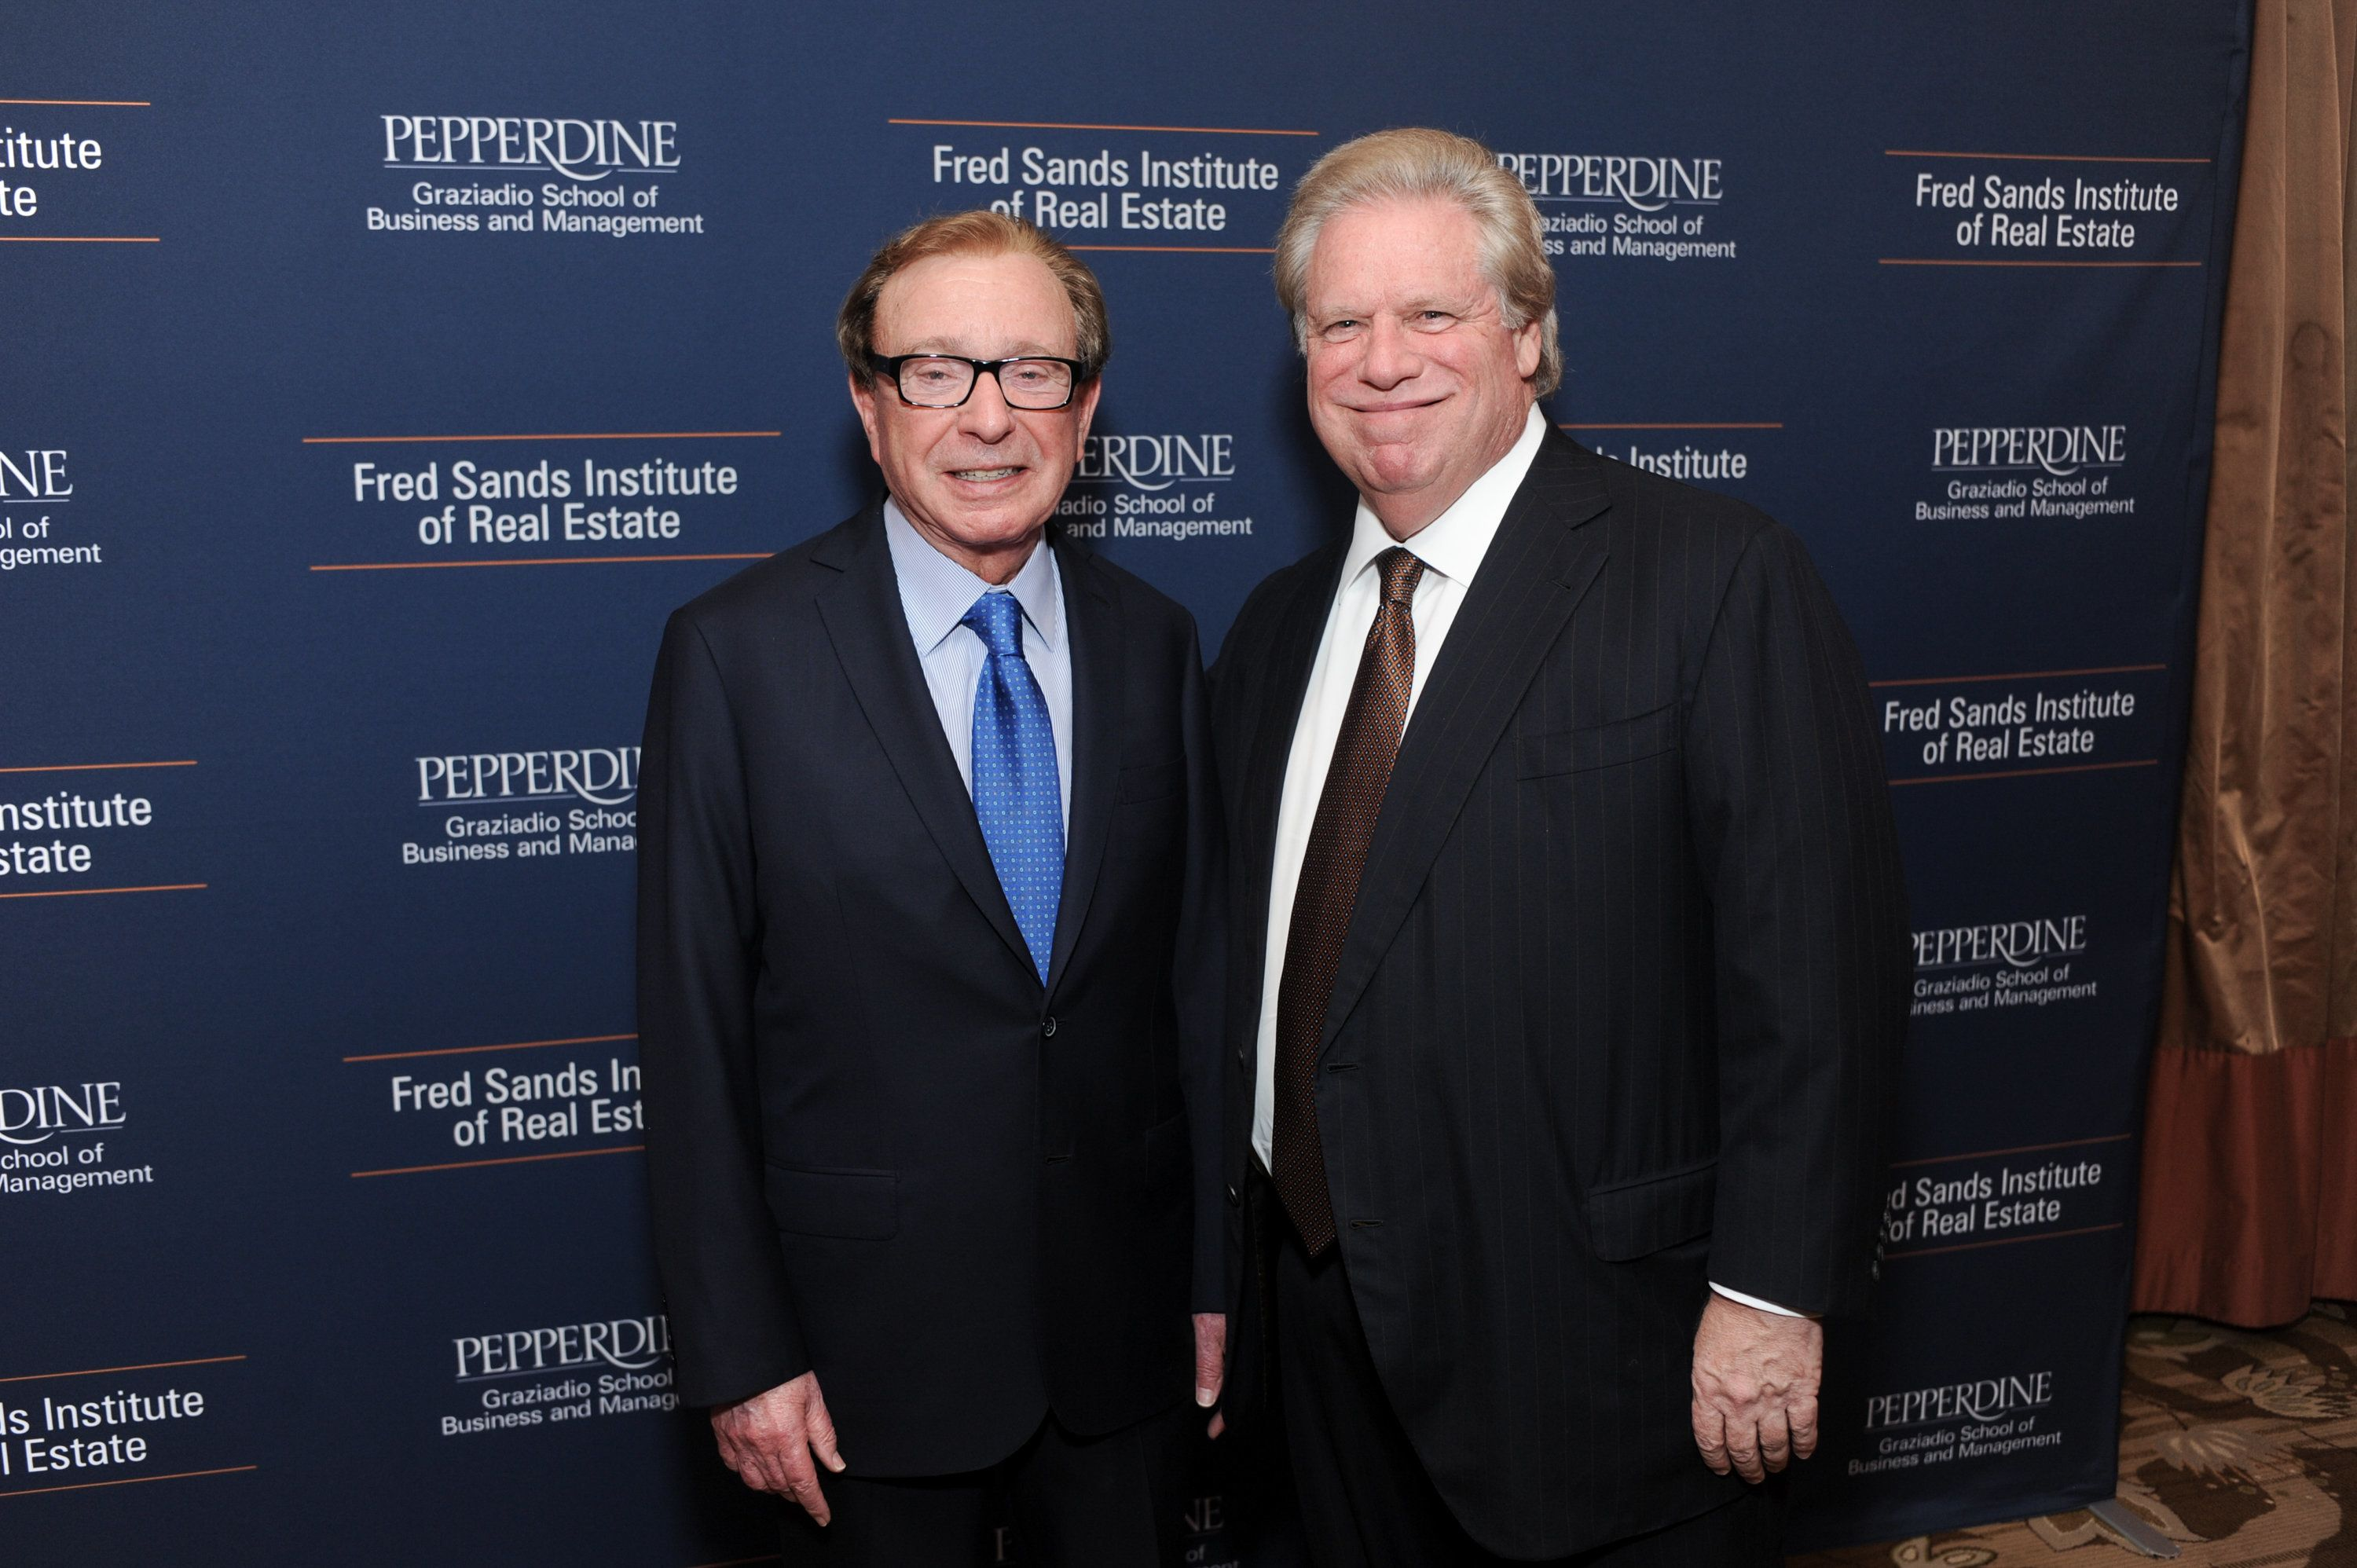 BEVERLY HILLS, CA - JUNE 24:  Fred Sands and Elliot Broidy attend Dedication And Celebration Dinner For The Fred Sands Institute Of Real Estate At Graziadio School, Pepperdine University at the Beverly Wilshire Four Seasons Hotel on June 24, 2015 in Beverly Hills, California.  (Photo by Stefanie Keenan/Getty Images for Pepperdine University)